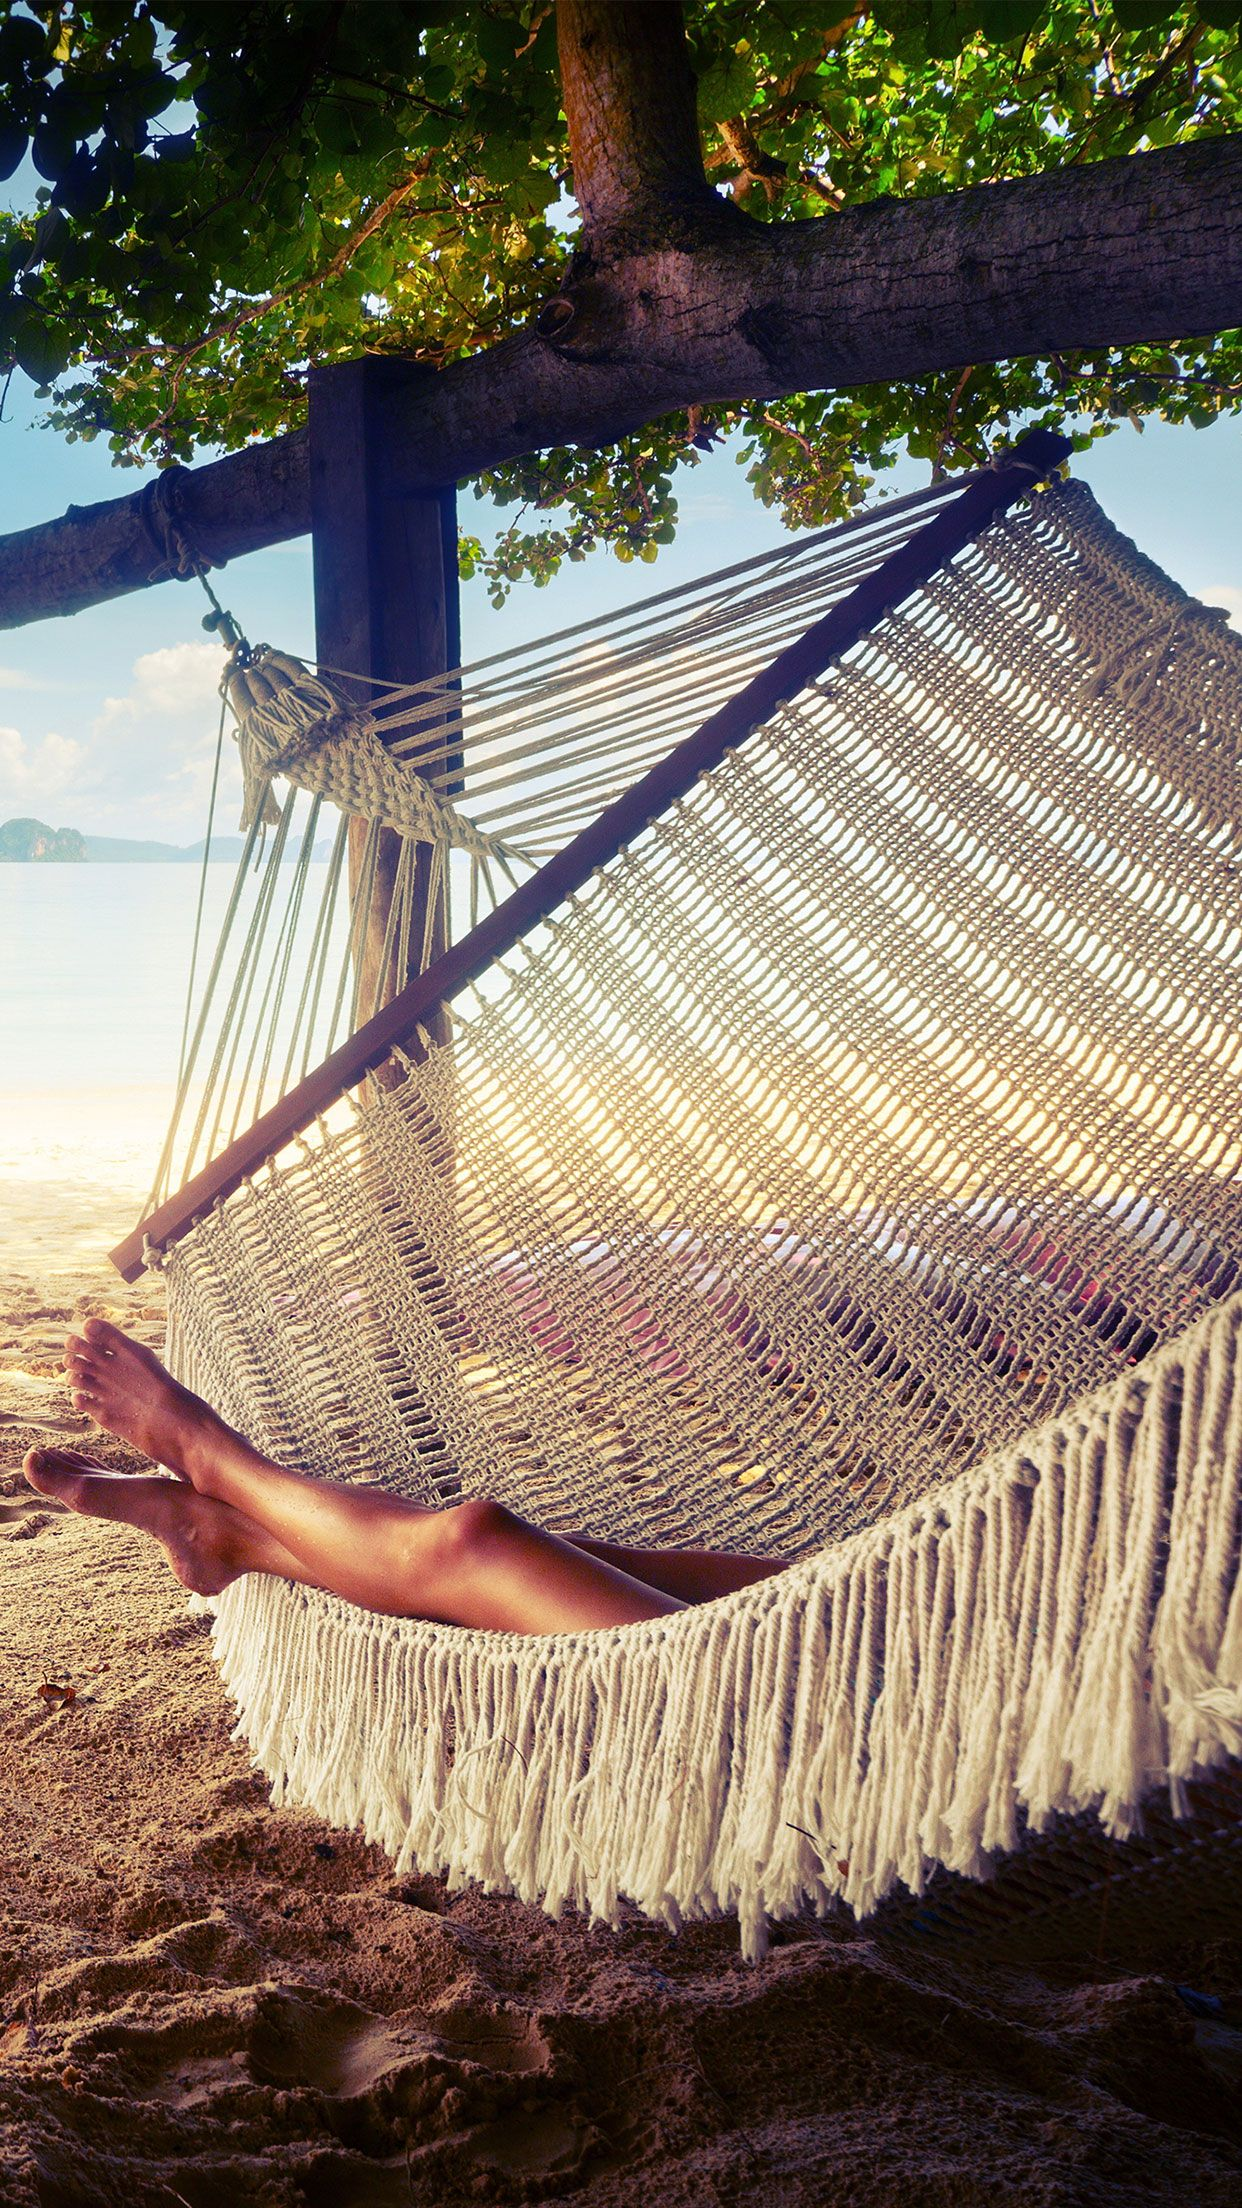 Relaxing Summer Day Wallpaper Iphone Android Summer Relax Wallpaper More Like This On Wallzapp Com Summer Relaxation Outdoor Outdoor Decor